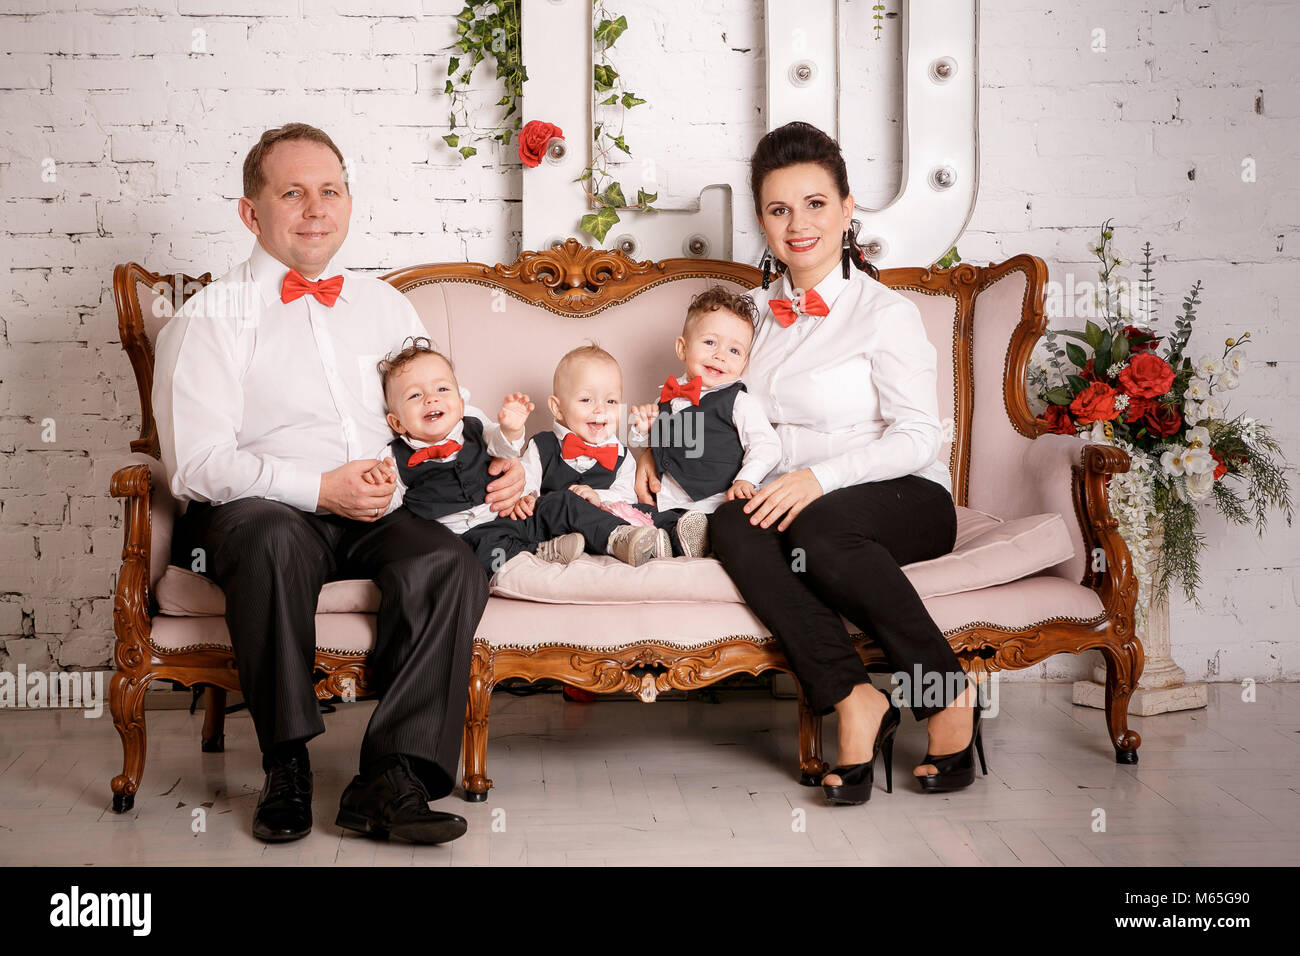 Big happy family: mother, father, triplets sons - Stock Image